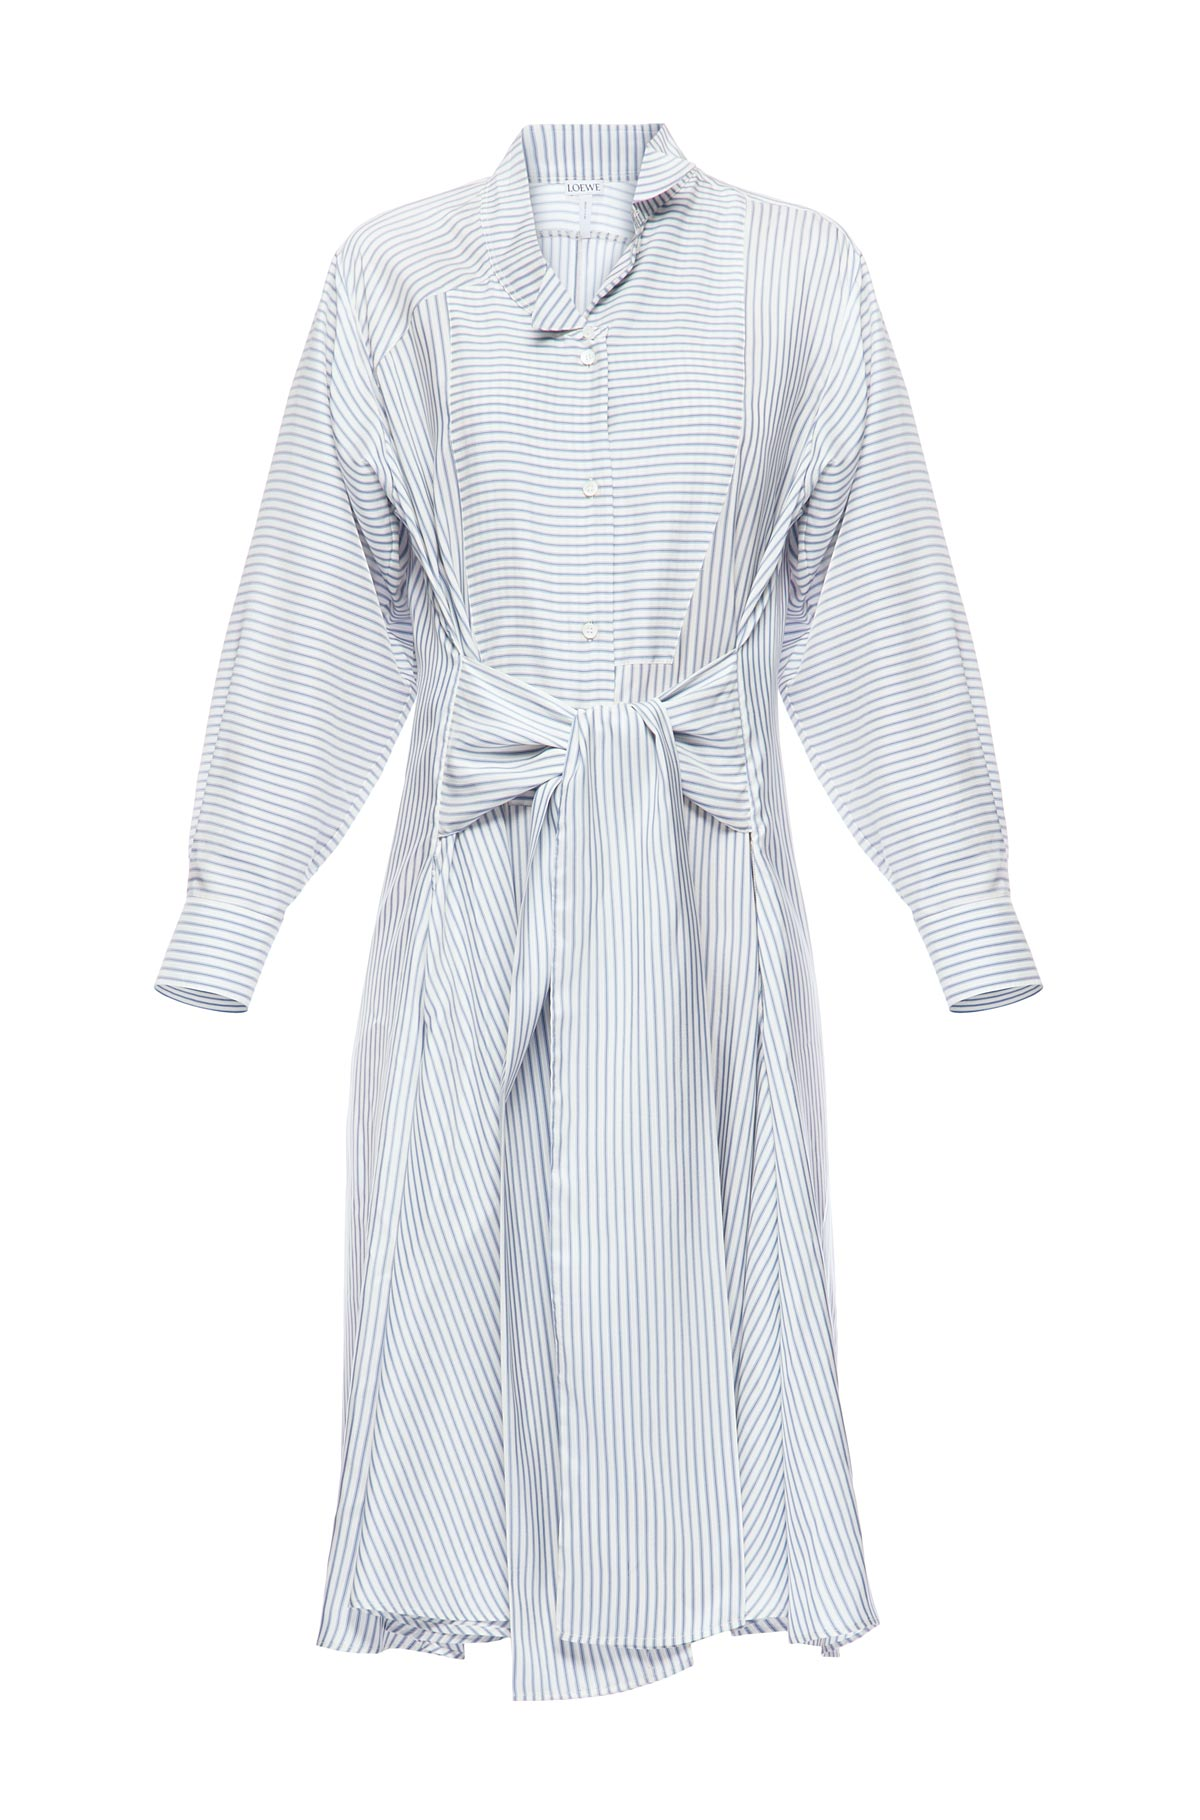 LOEWE Stripe Shirtdress White/Blue front